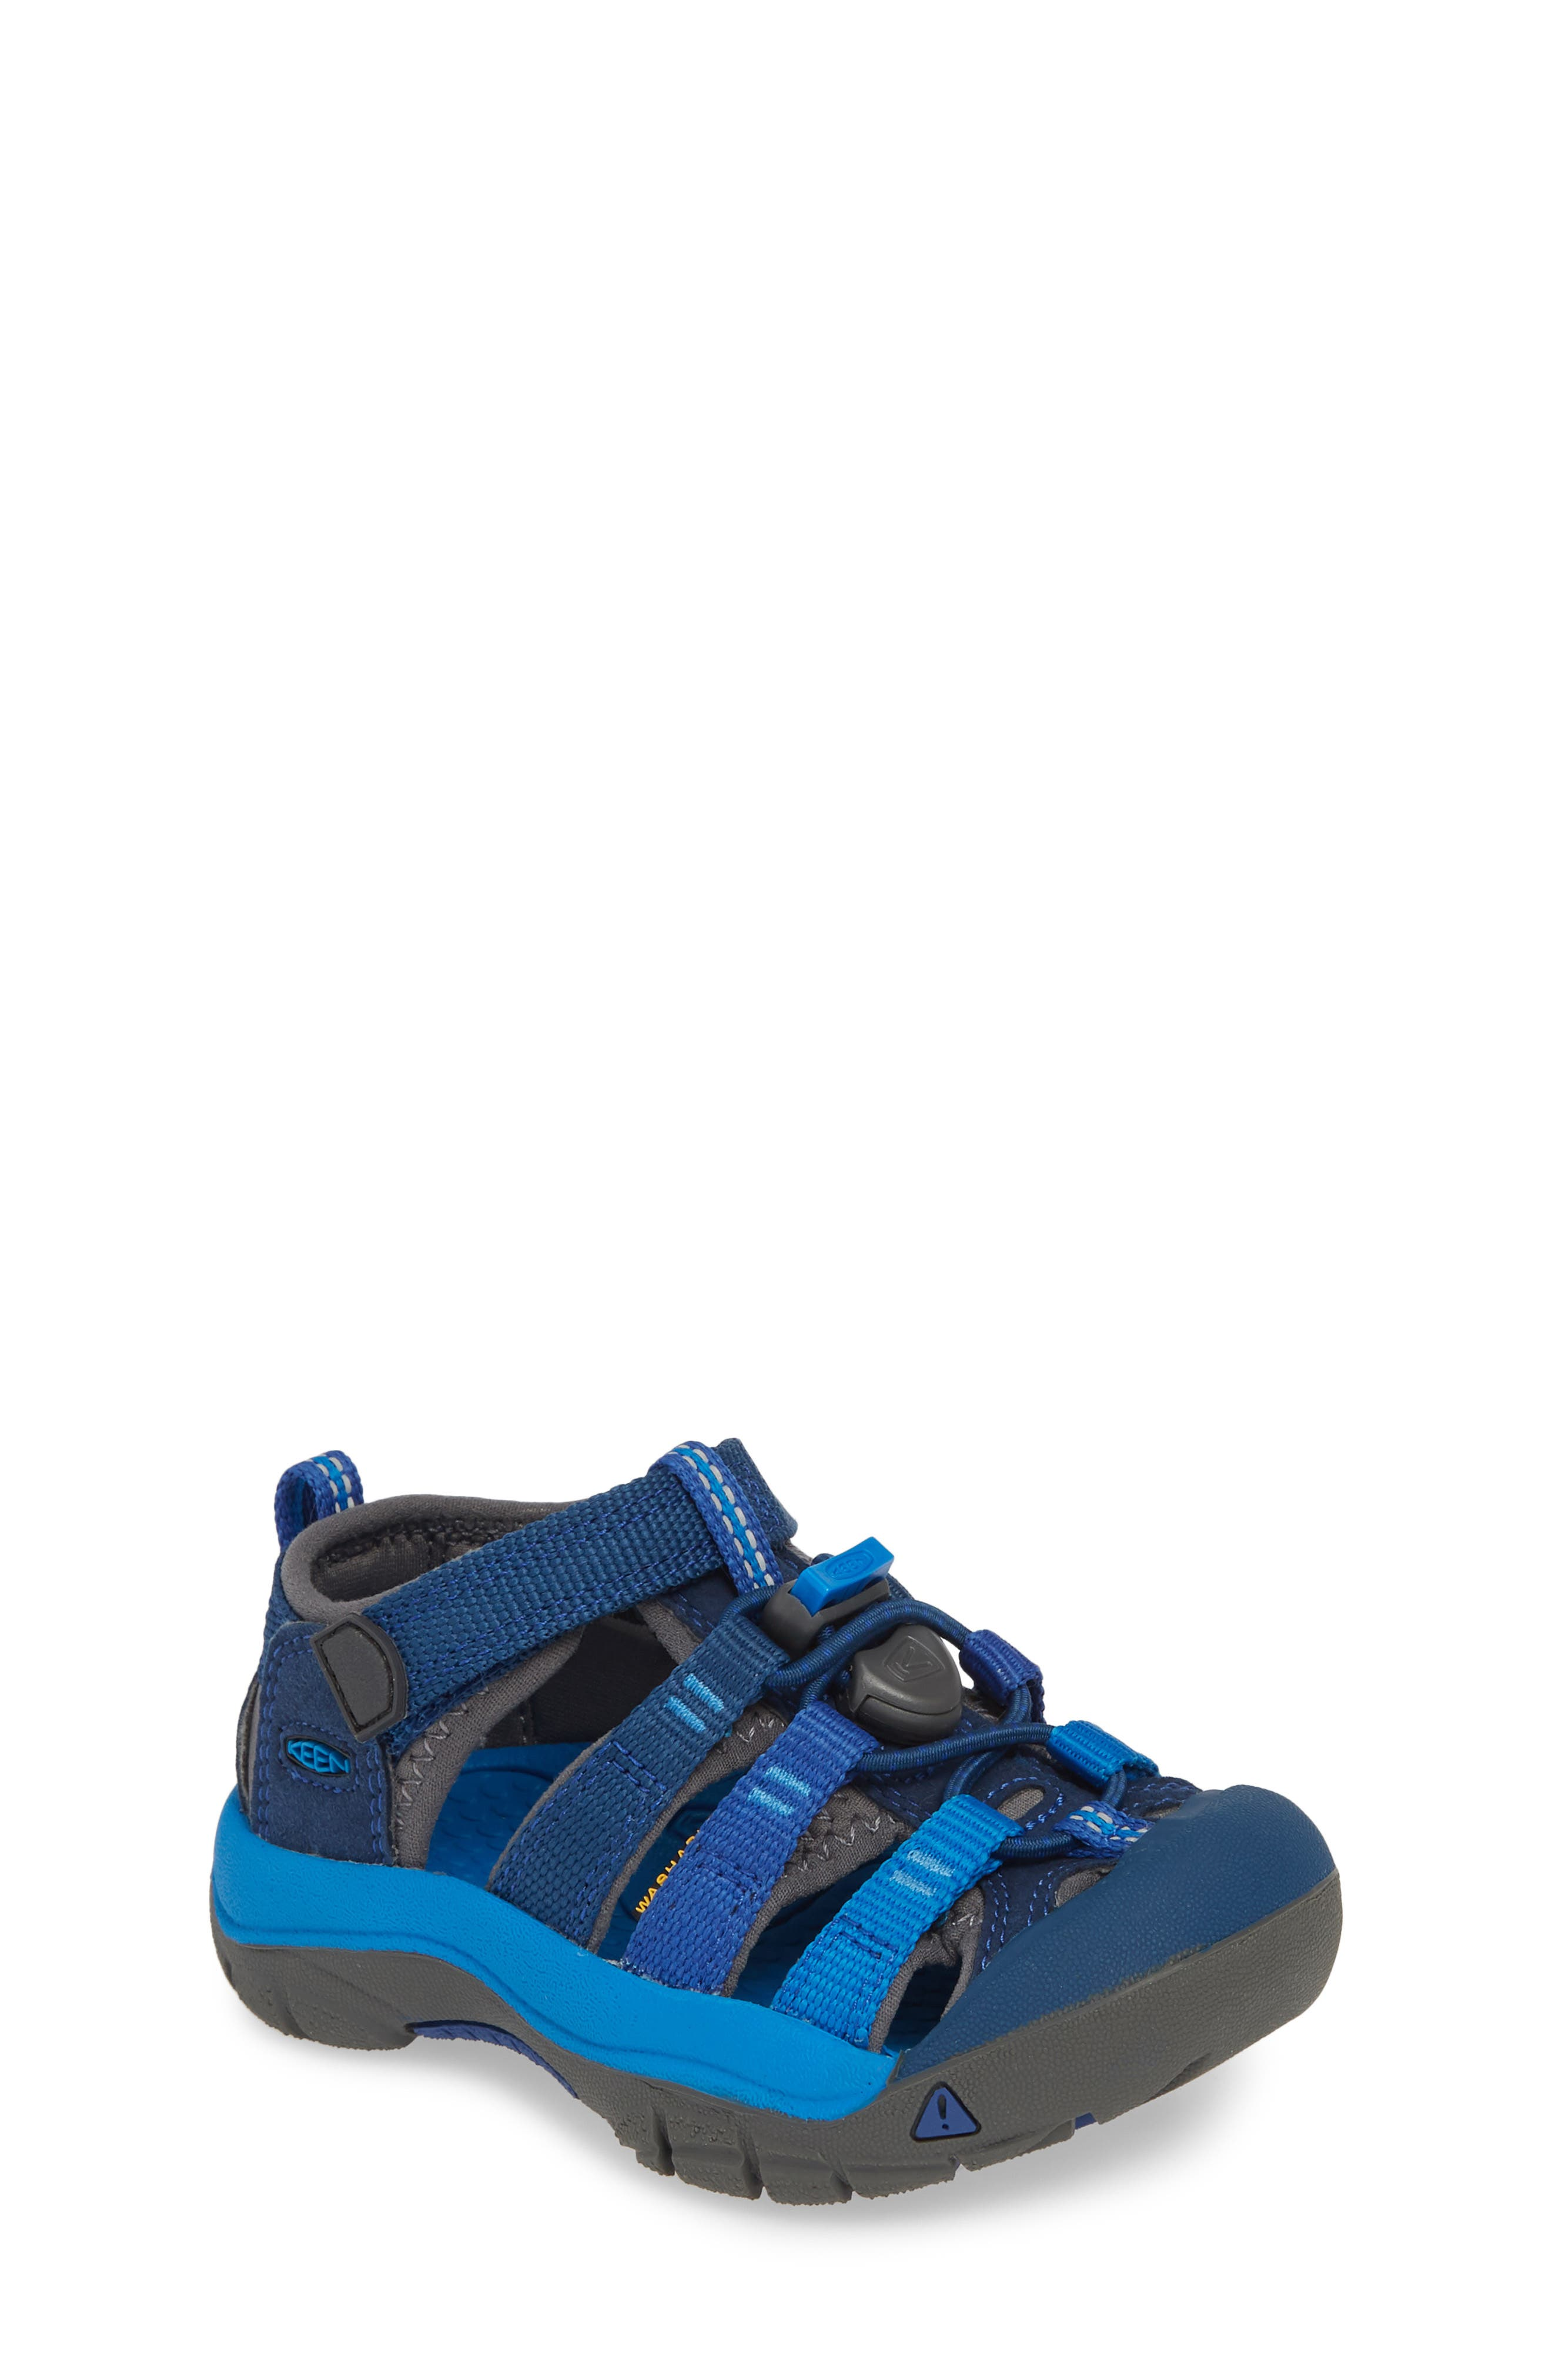 premium selection 659f5 c6b50 Little Girls  Water Sports Shoes   Nordstrom